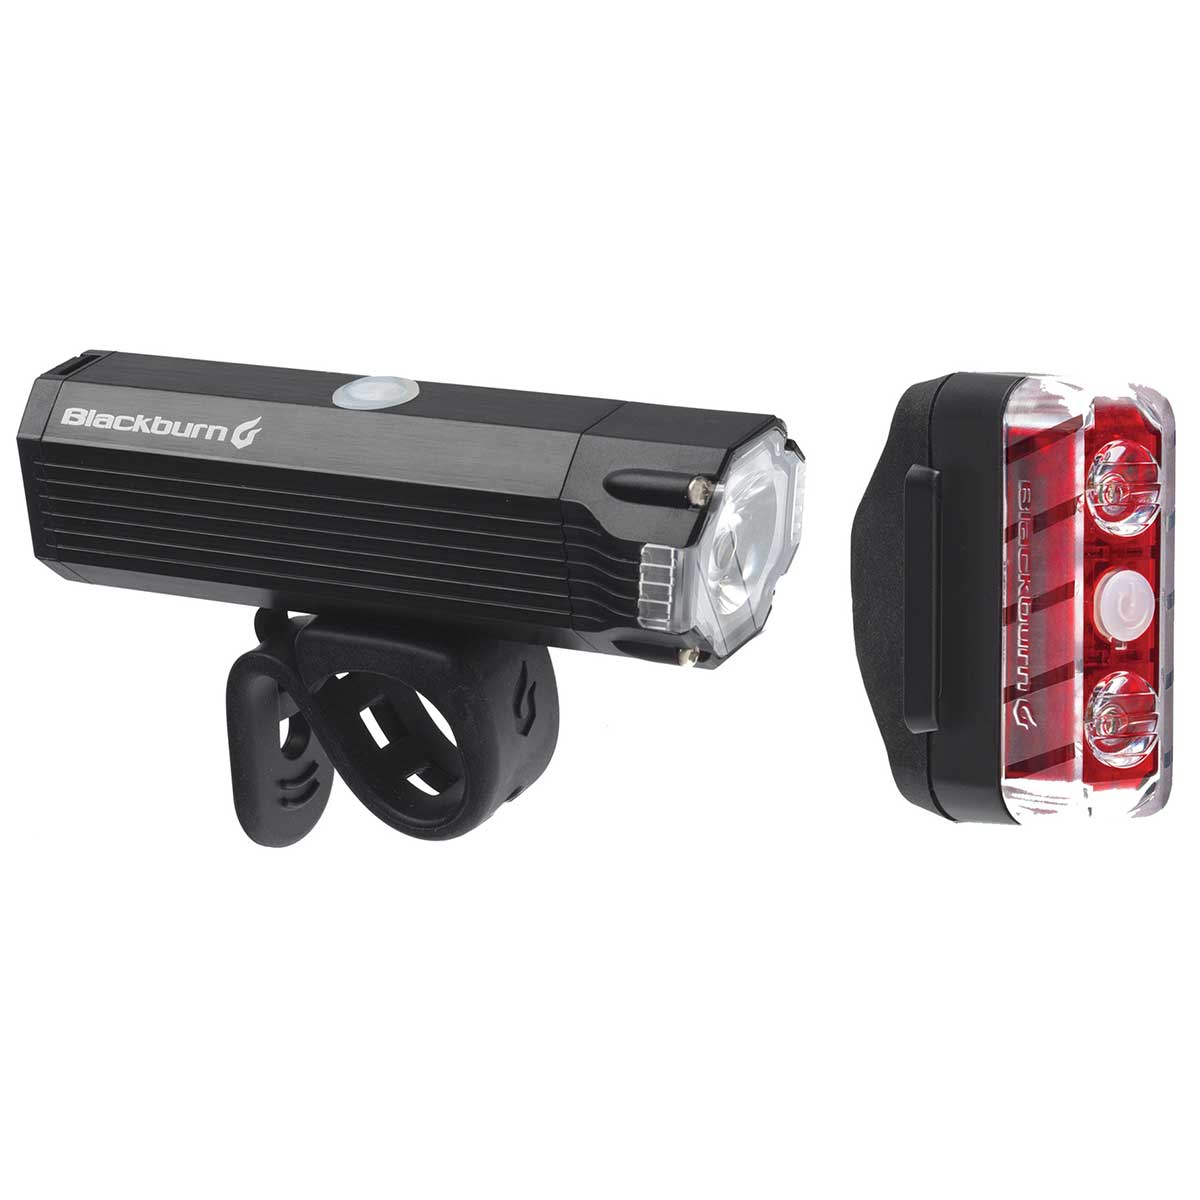 Blackburn Dayblazer 800 Front 65 Rear Light Set in Black